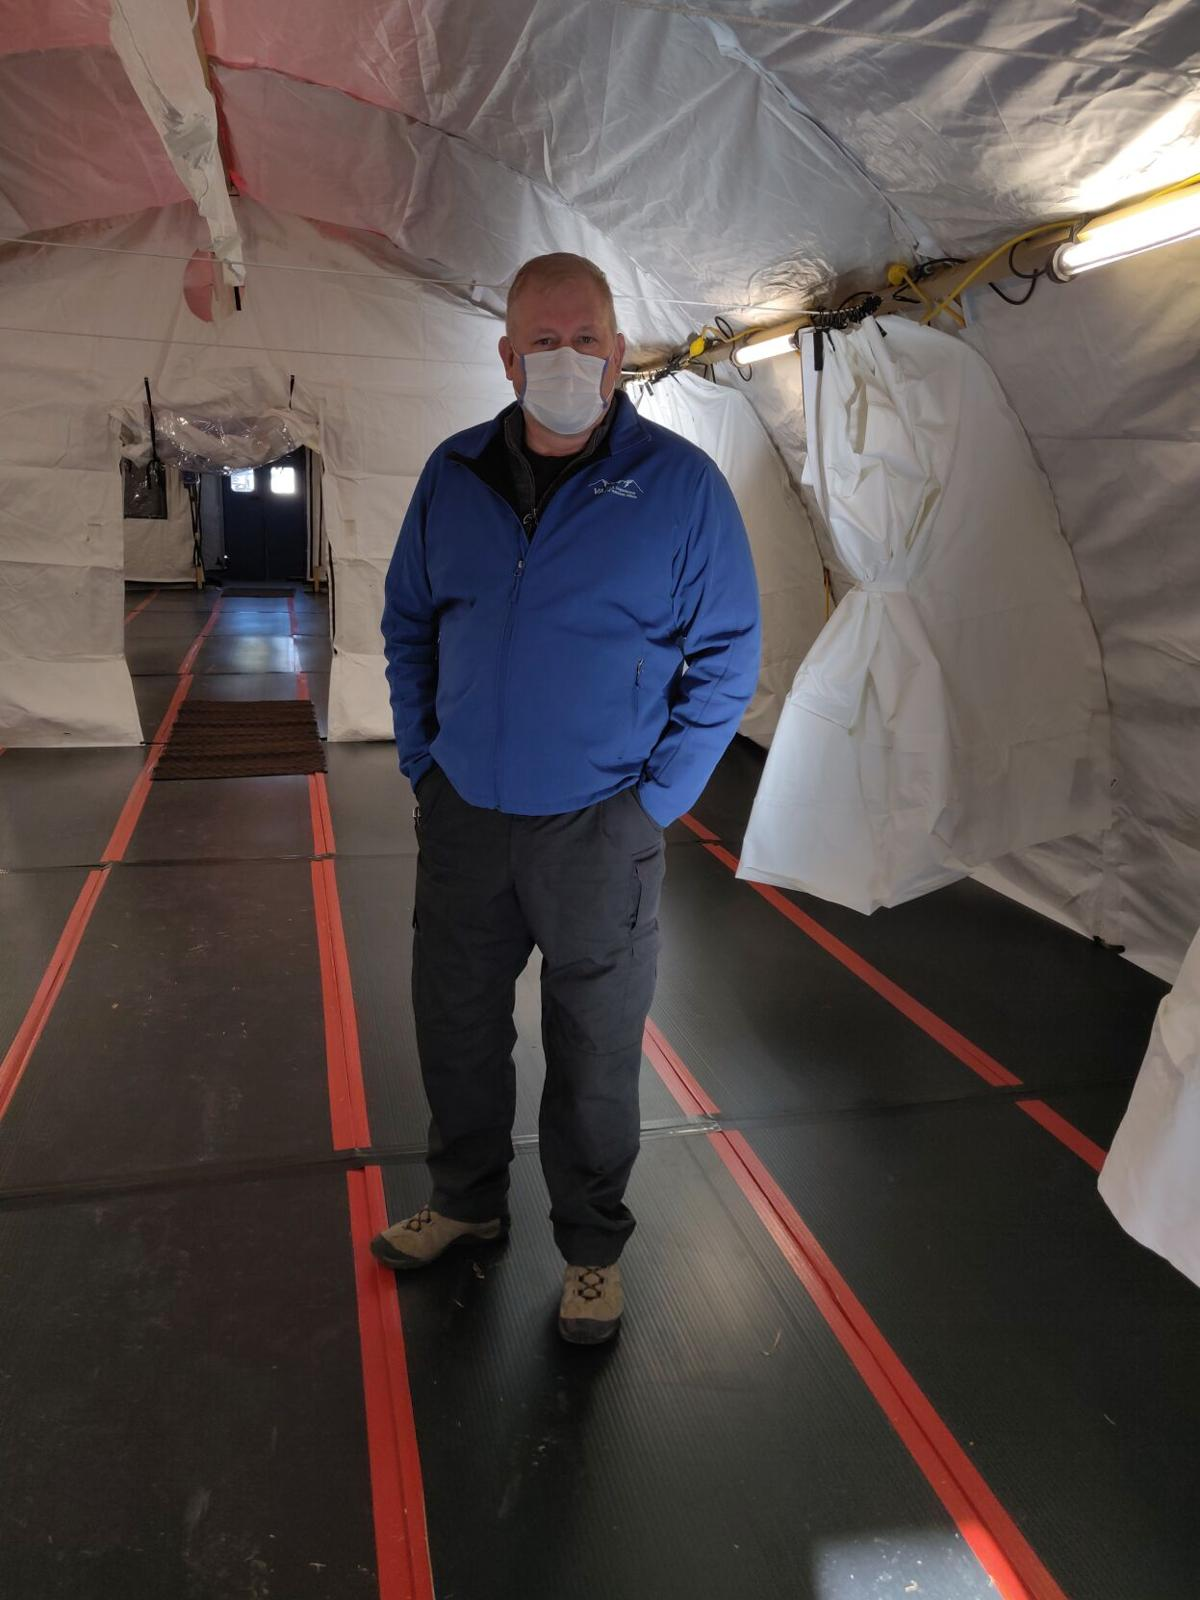 Erich Kurtz stands inside one of the tents erected to handle Covid patients